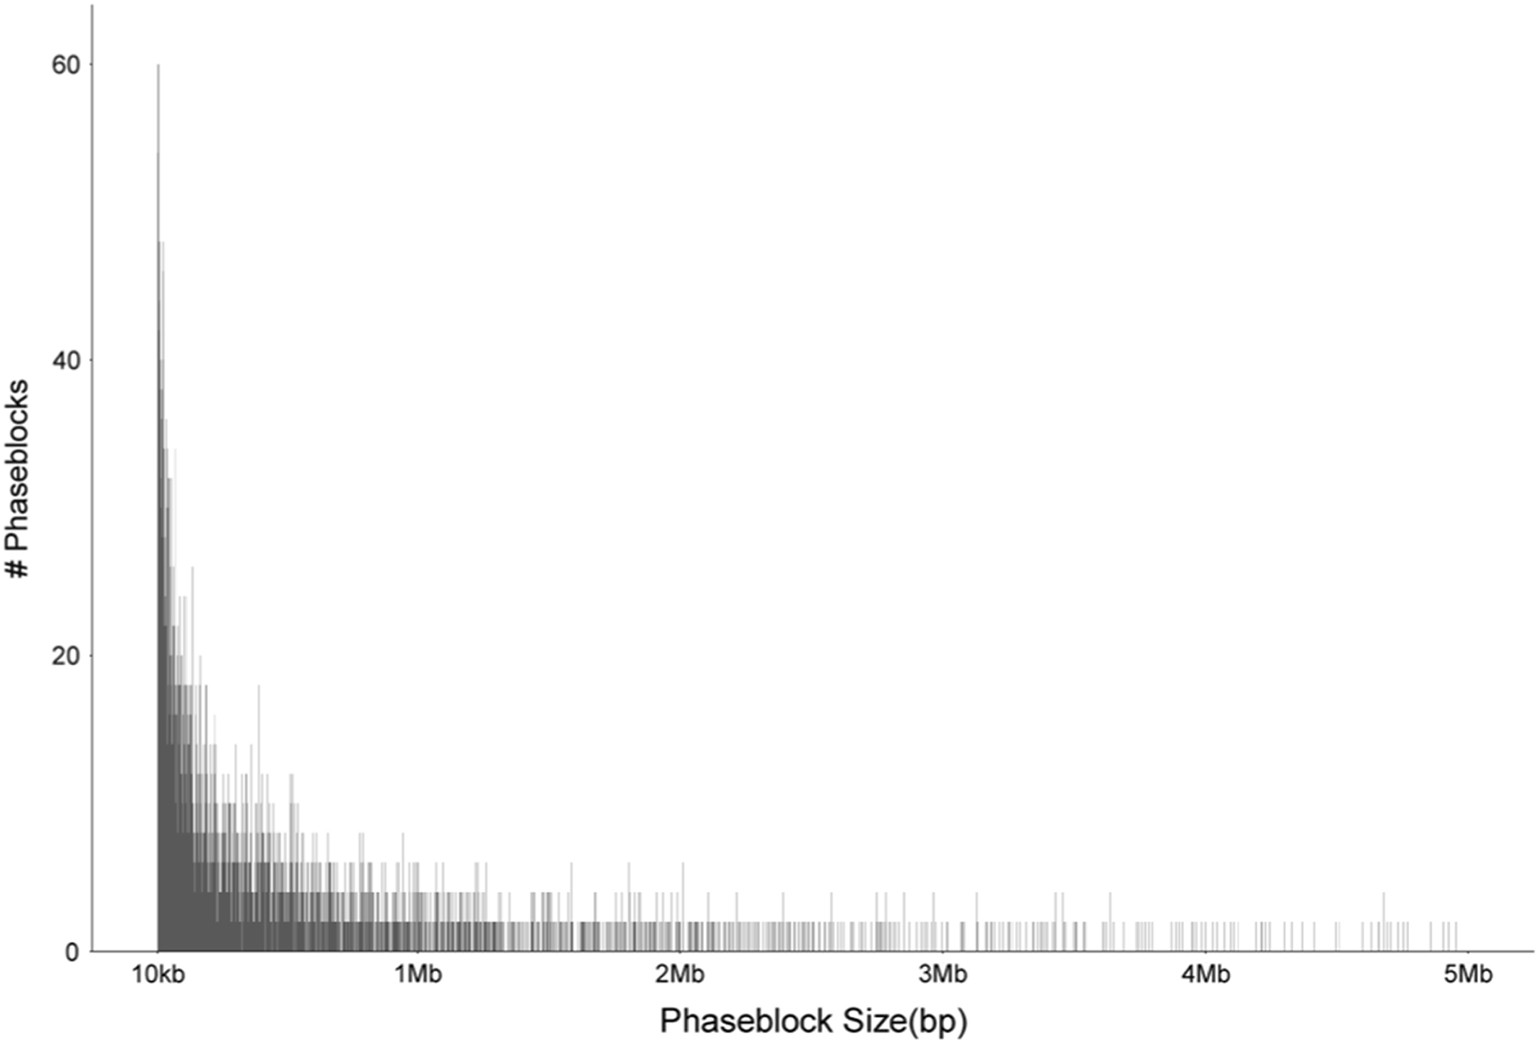 Reference quality assembly of the 3 5-Gb genome of Capsicum